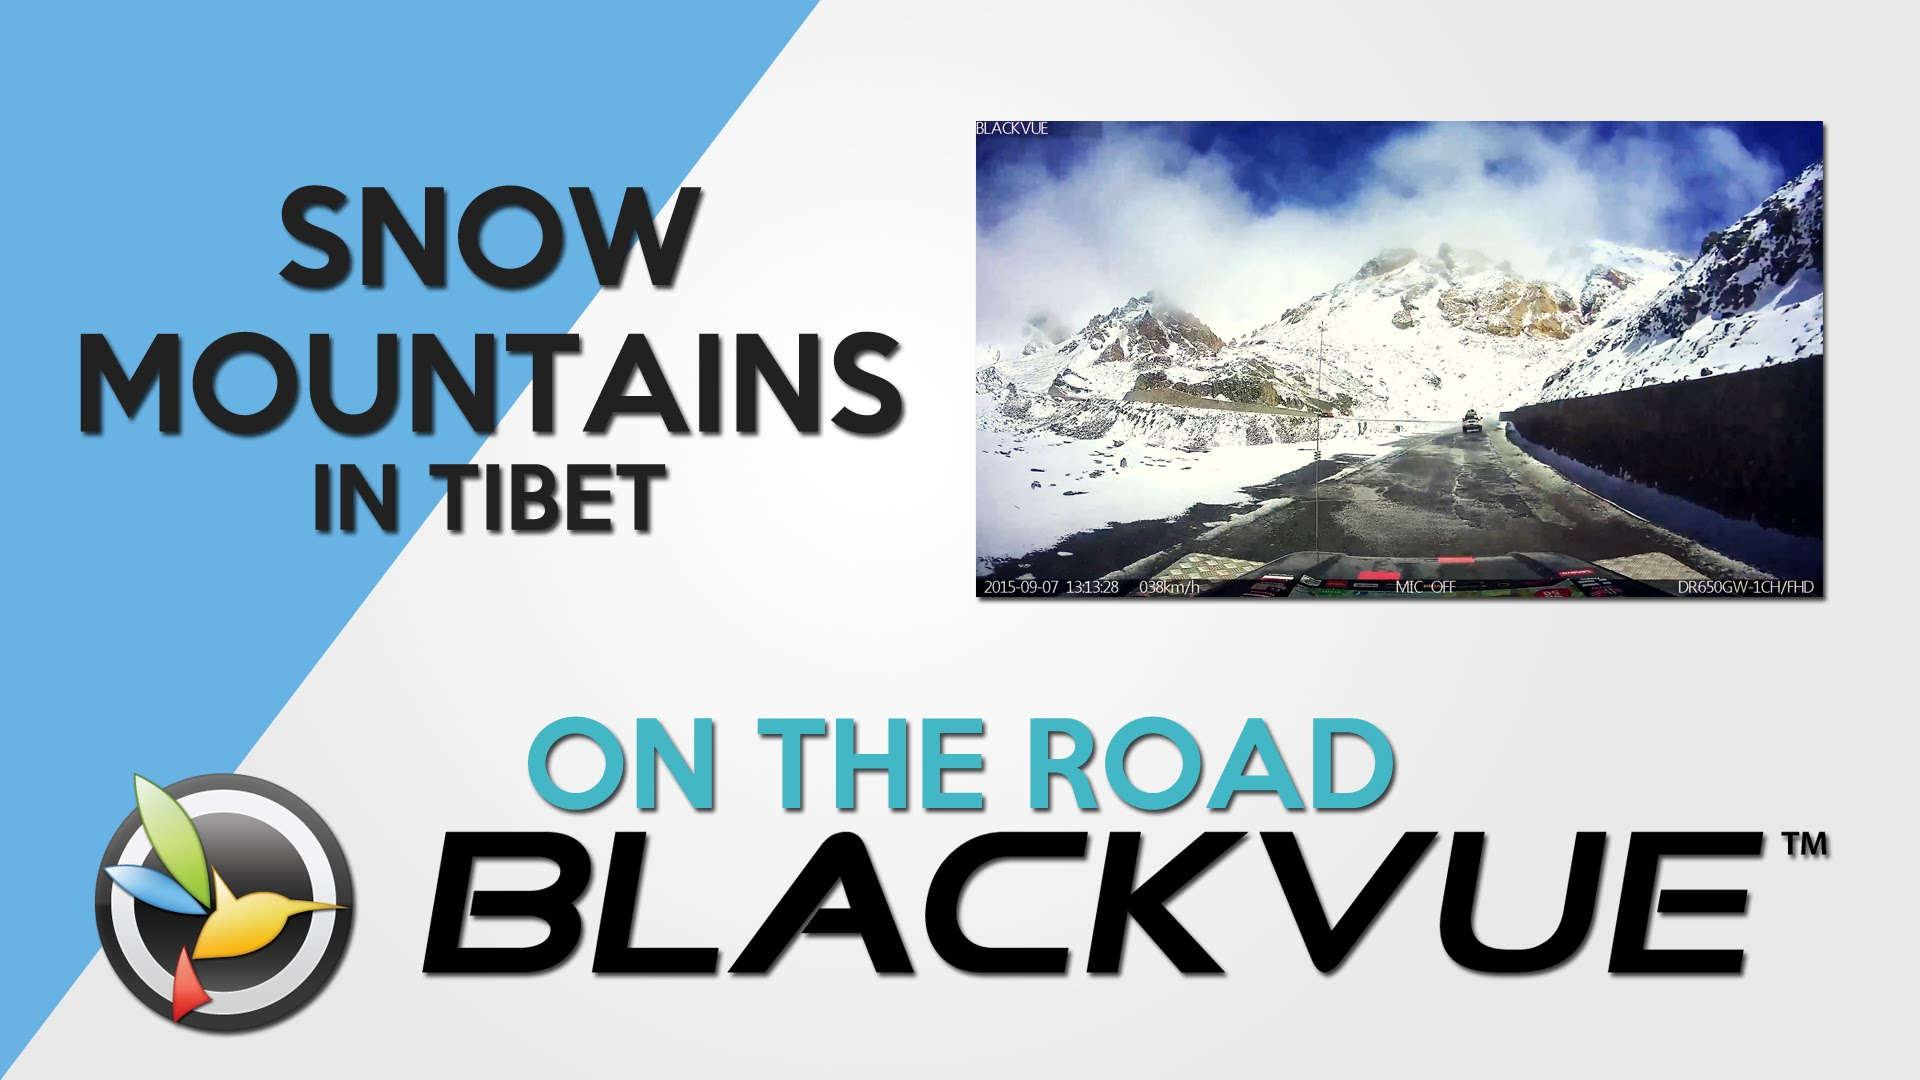 BLACKVUE ON THE ROAD: Snow Mountains in Tibet